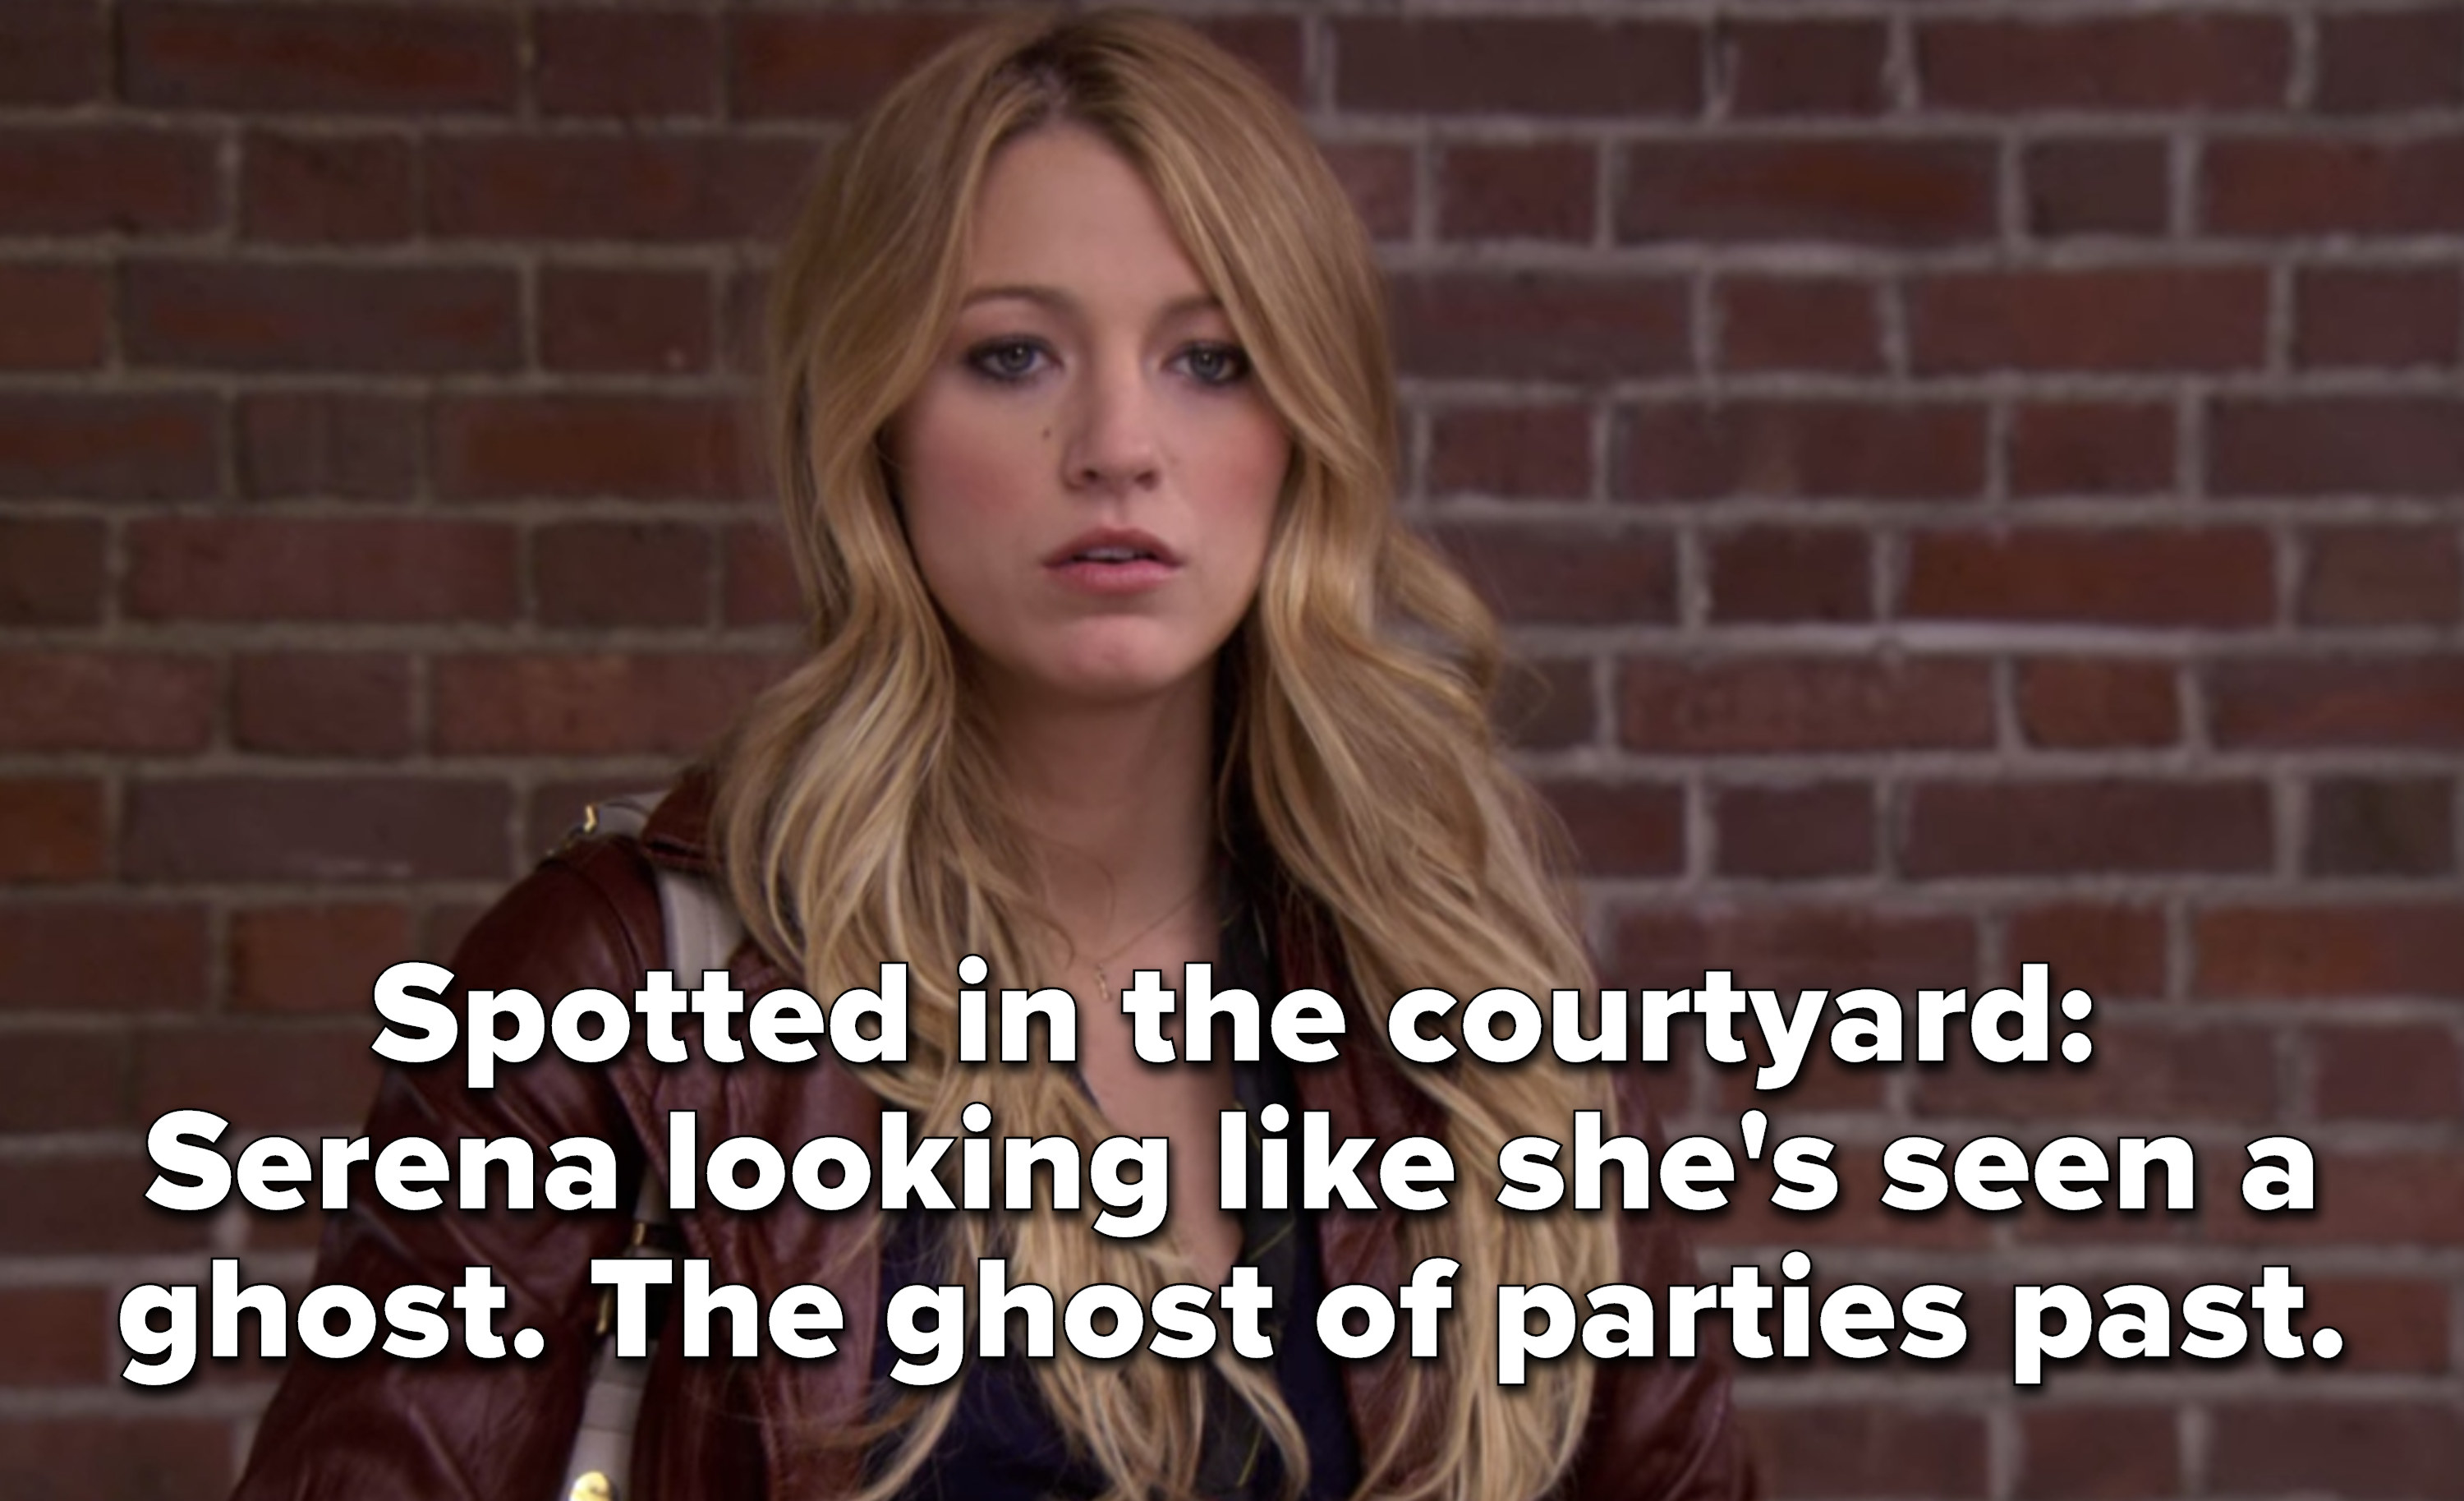 """""""Spotted in the courtyard: Serena looking like she's seen a ghost. The ghost of parties past"""""""